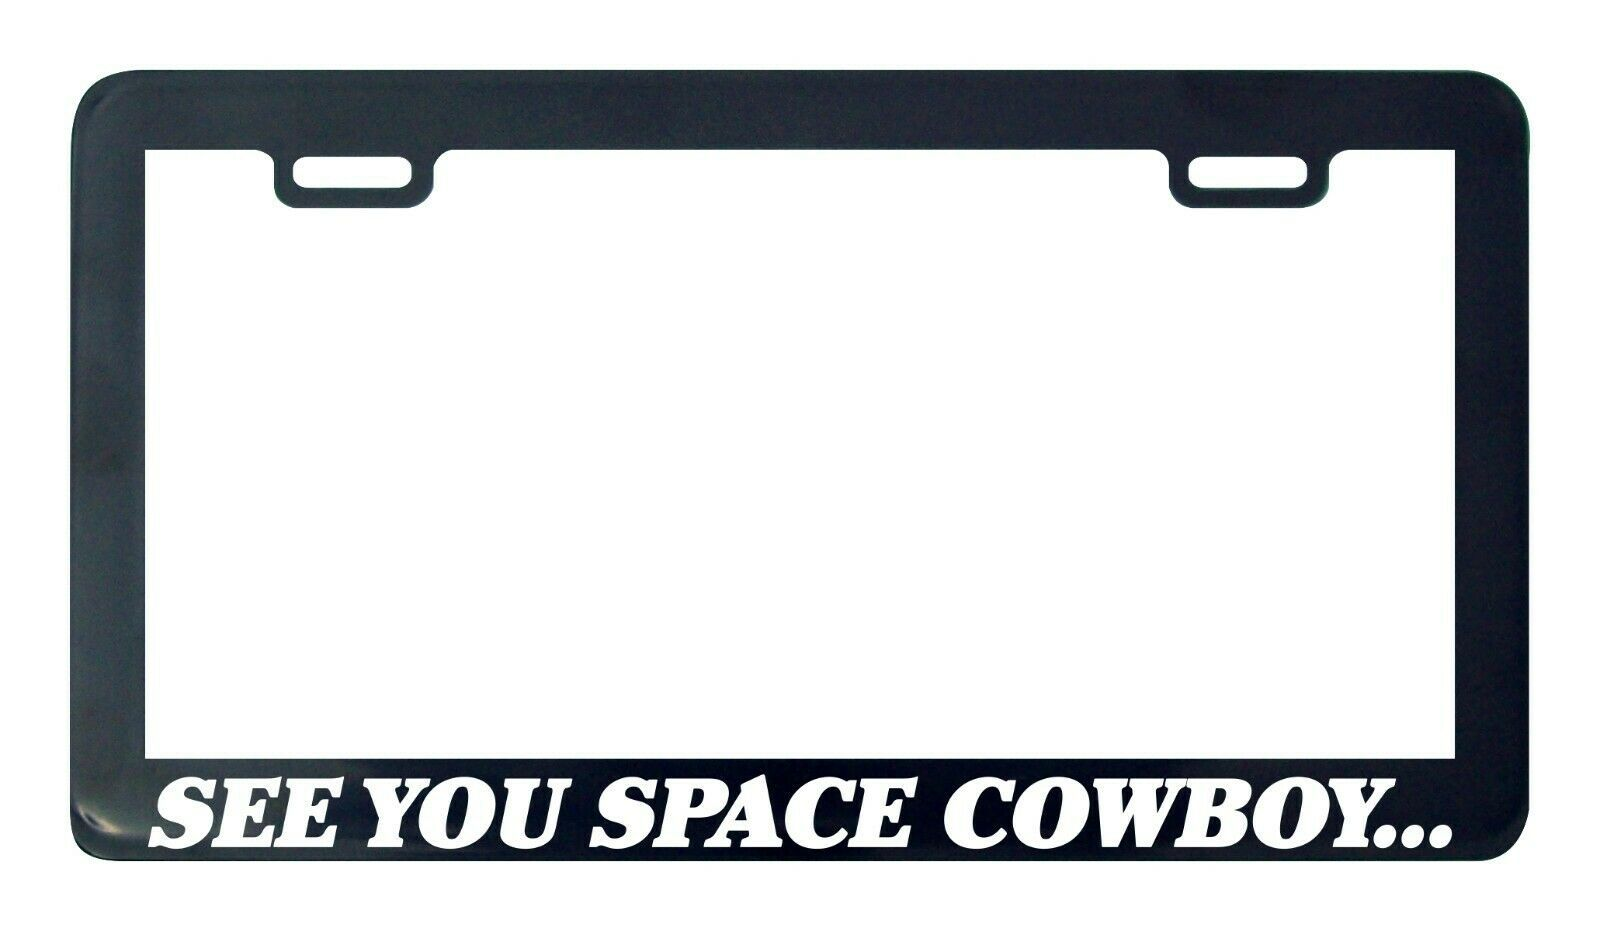 Primary image for See you space cowboy bebop license plate frame tag holder